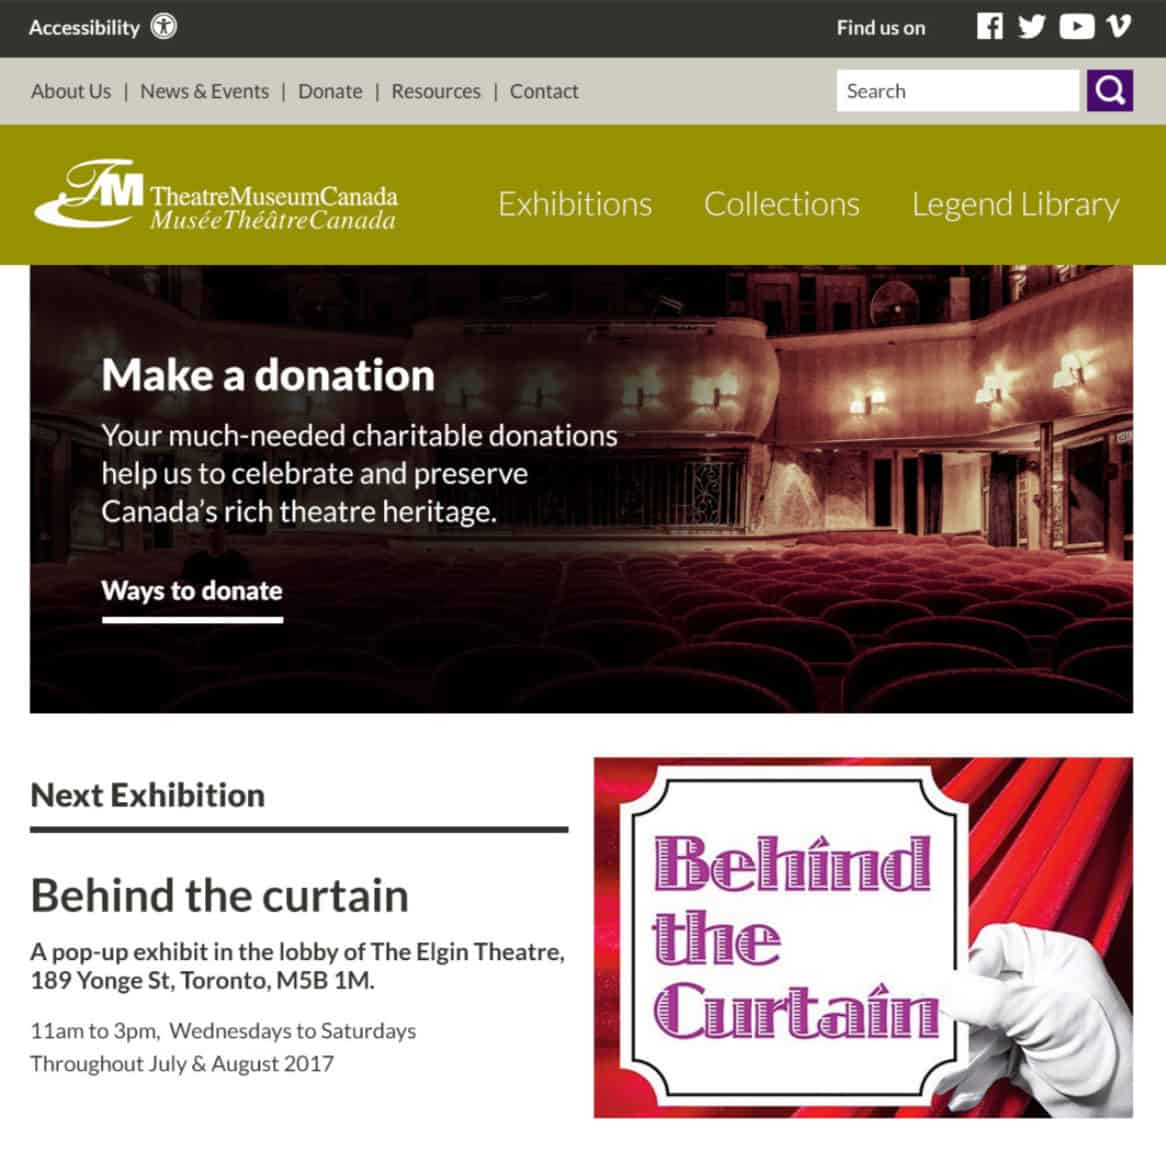 Screenshot of Theatre Museum Canada website - Exhibitions page